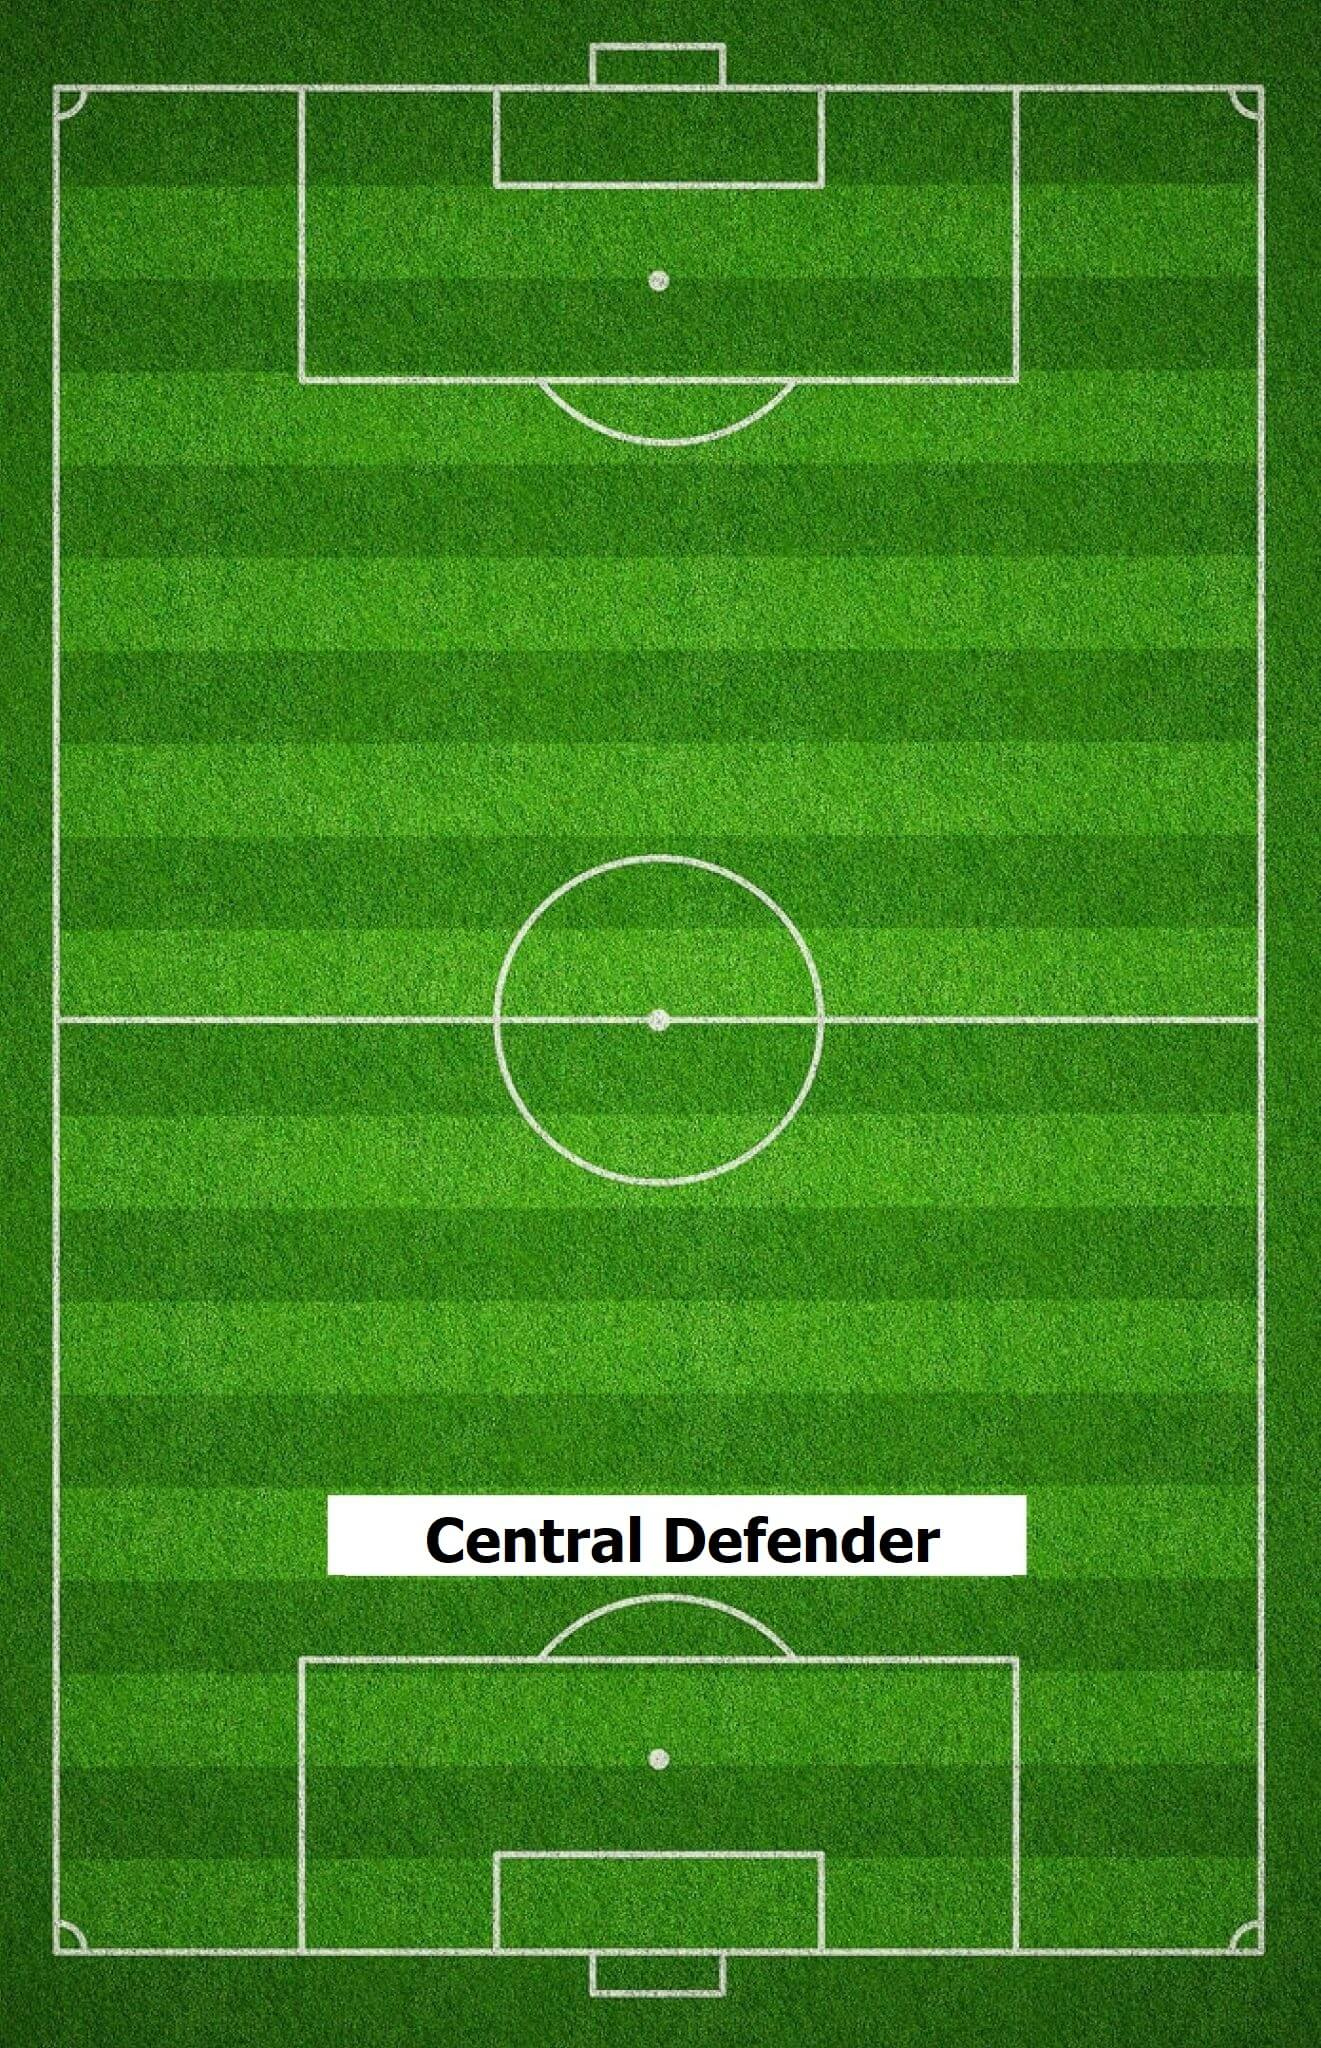 What is classic central defender, stopper and central defender cover in the game of football?